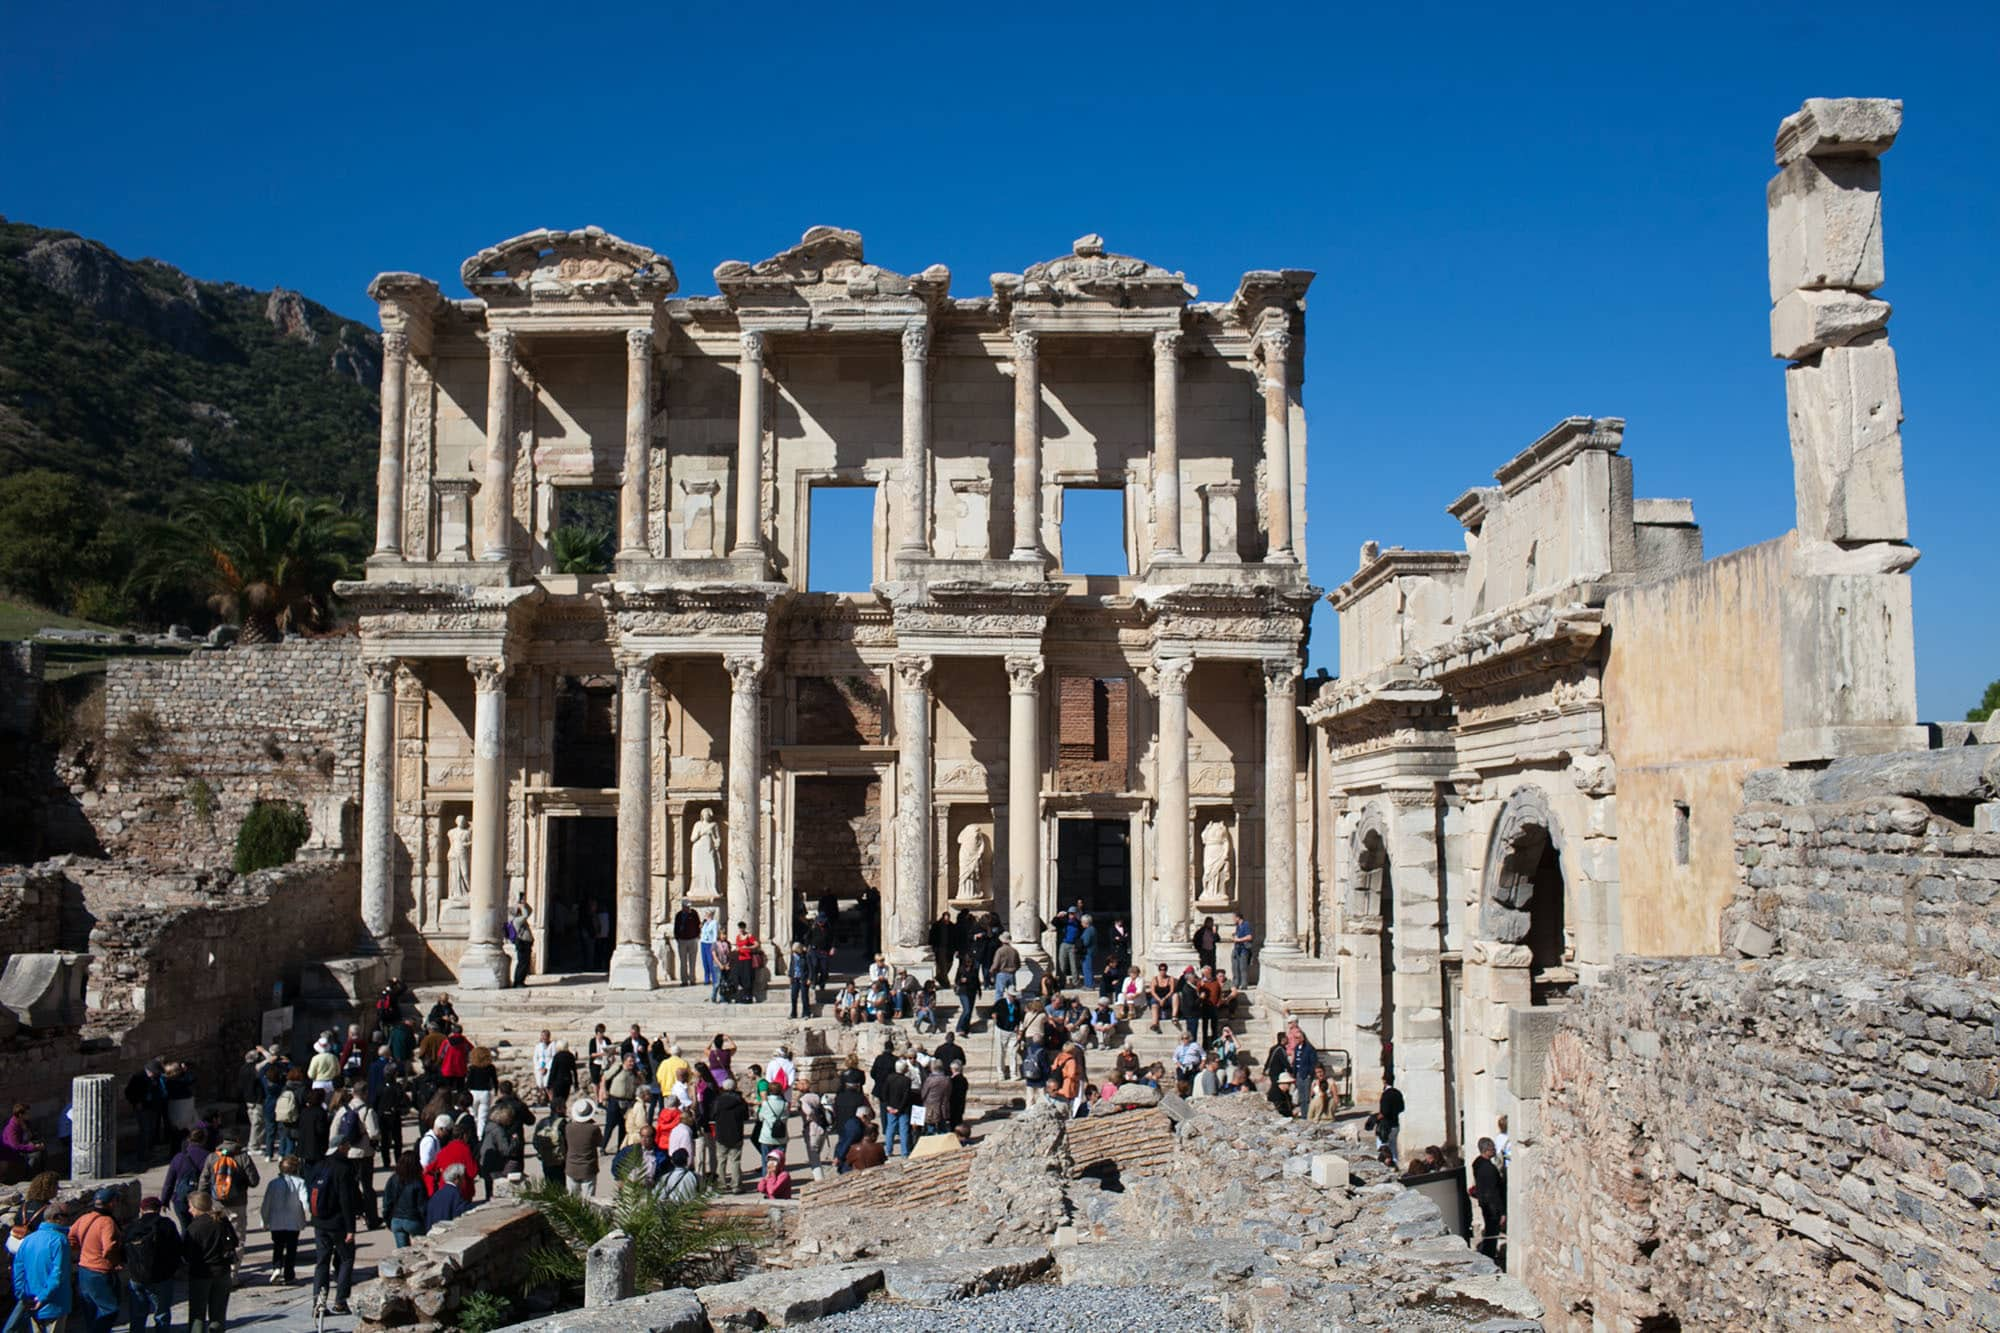 The ancient Greek city of Ephesus that lies in present day Turkey.